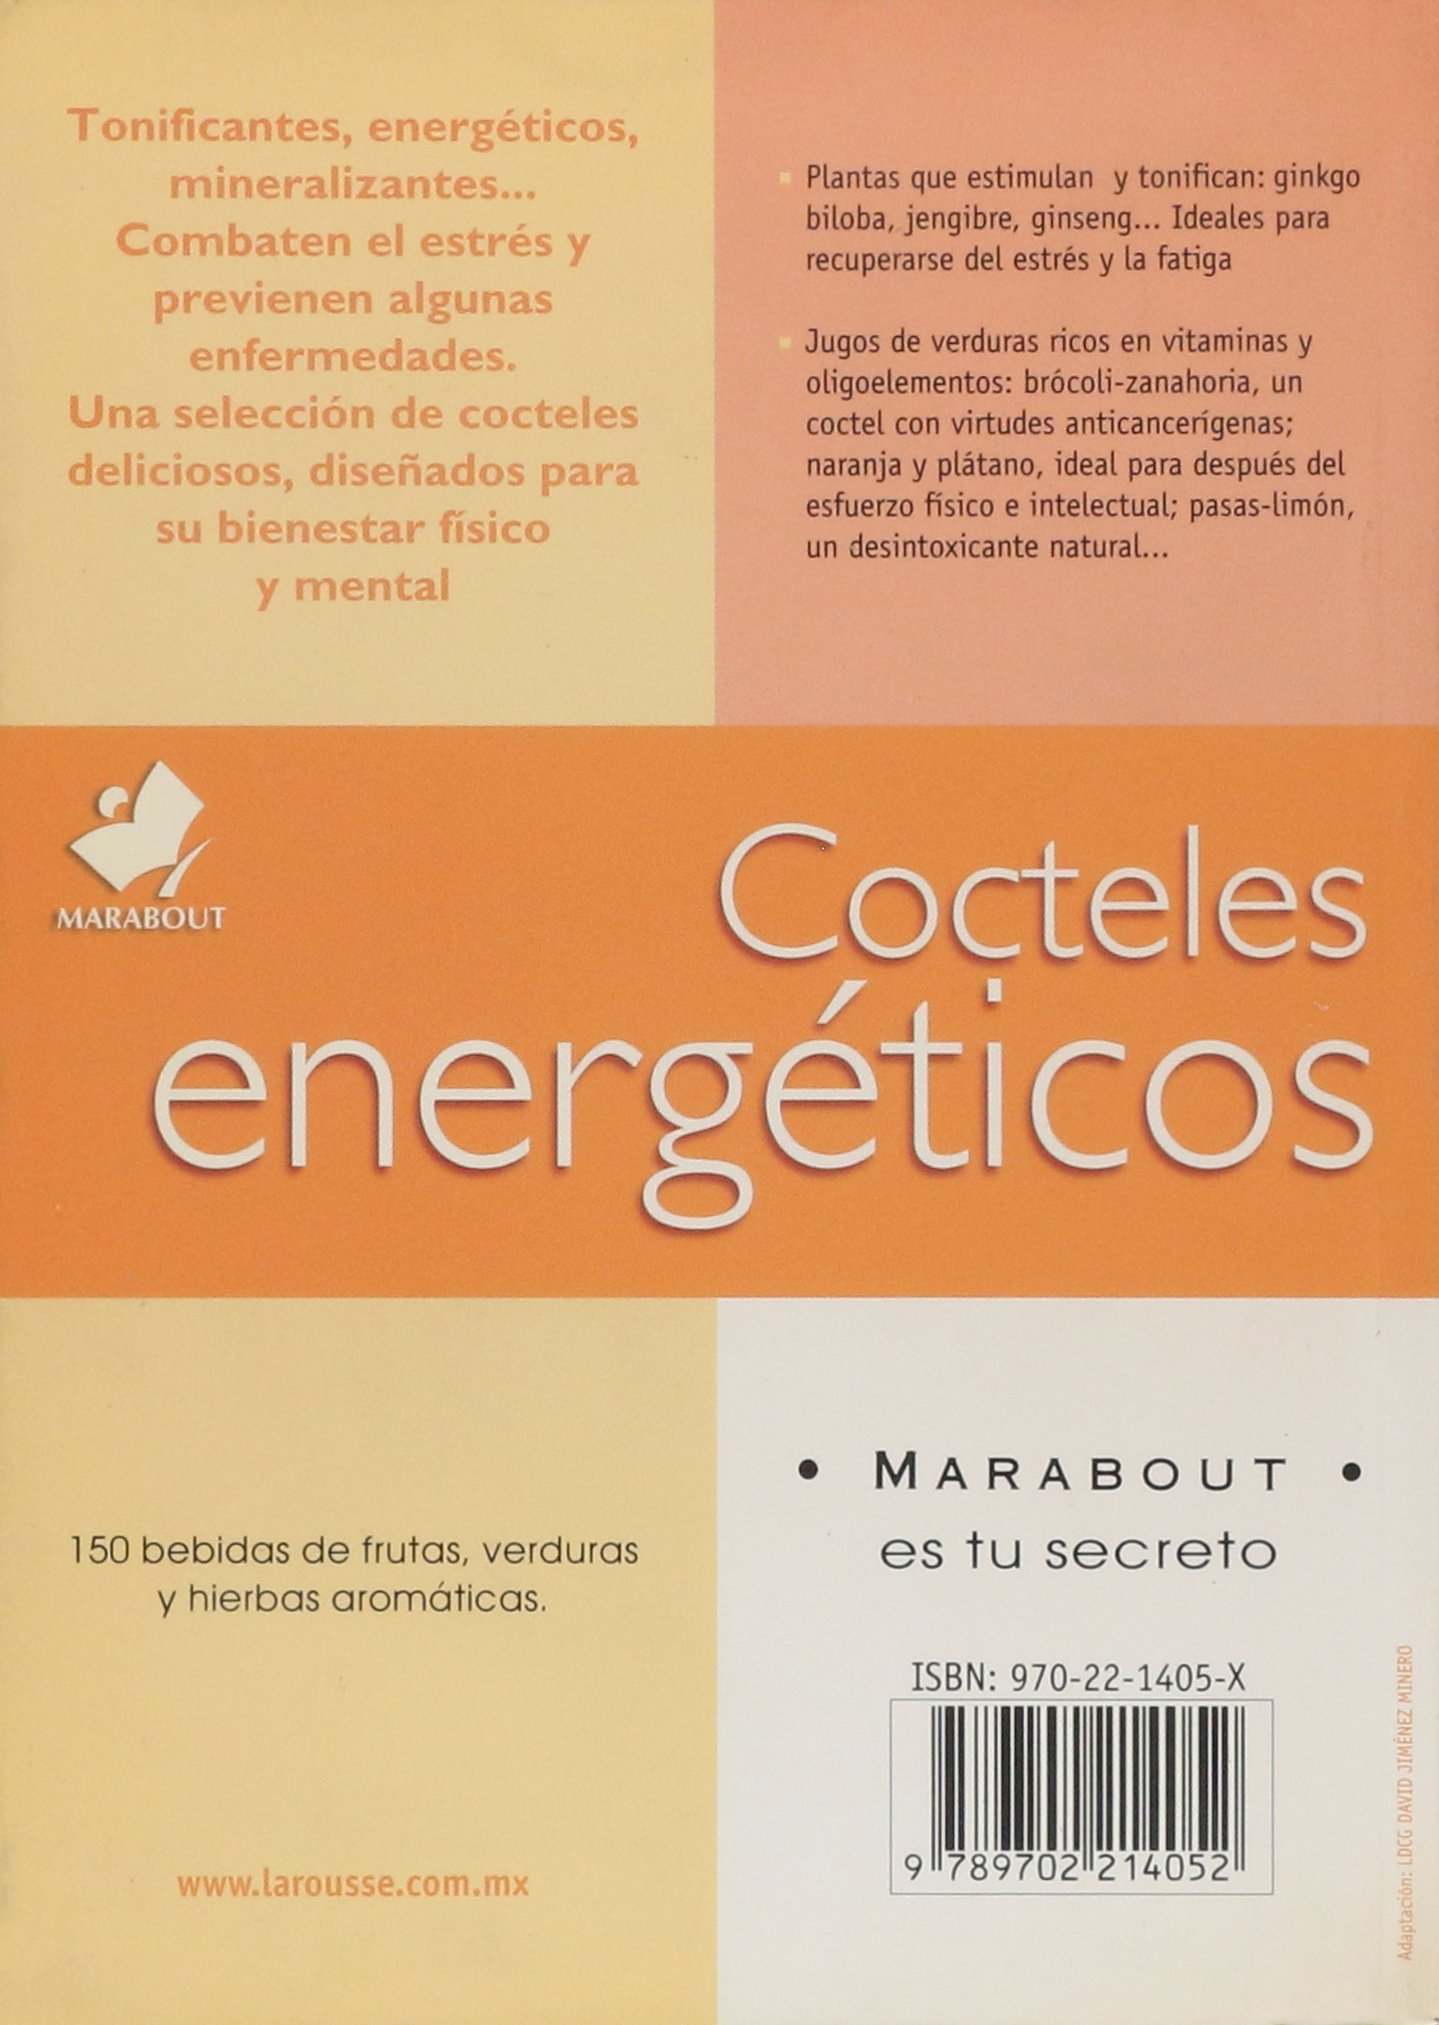 Cocteles Energeticos/ Energetic Cocktails (Nutricion) (Spanish Edition): Ediciones larousse: 9789702214052: Amazon.com: Books